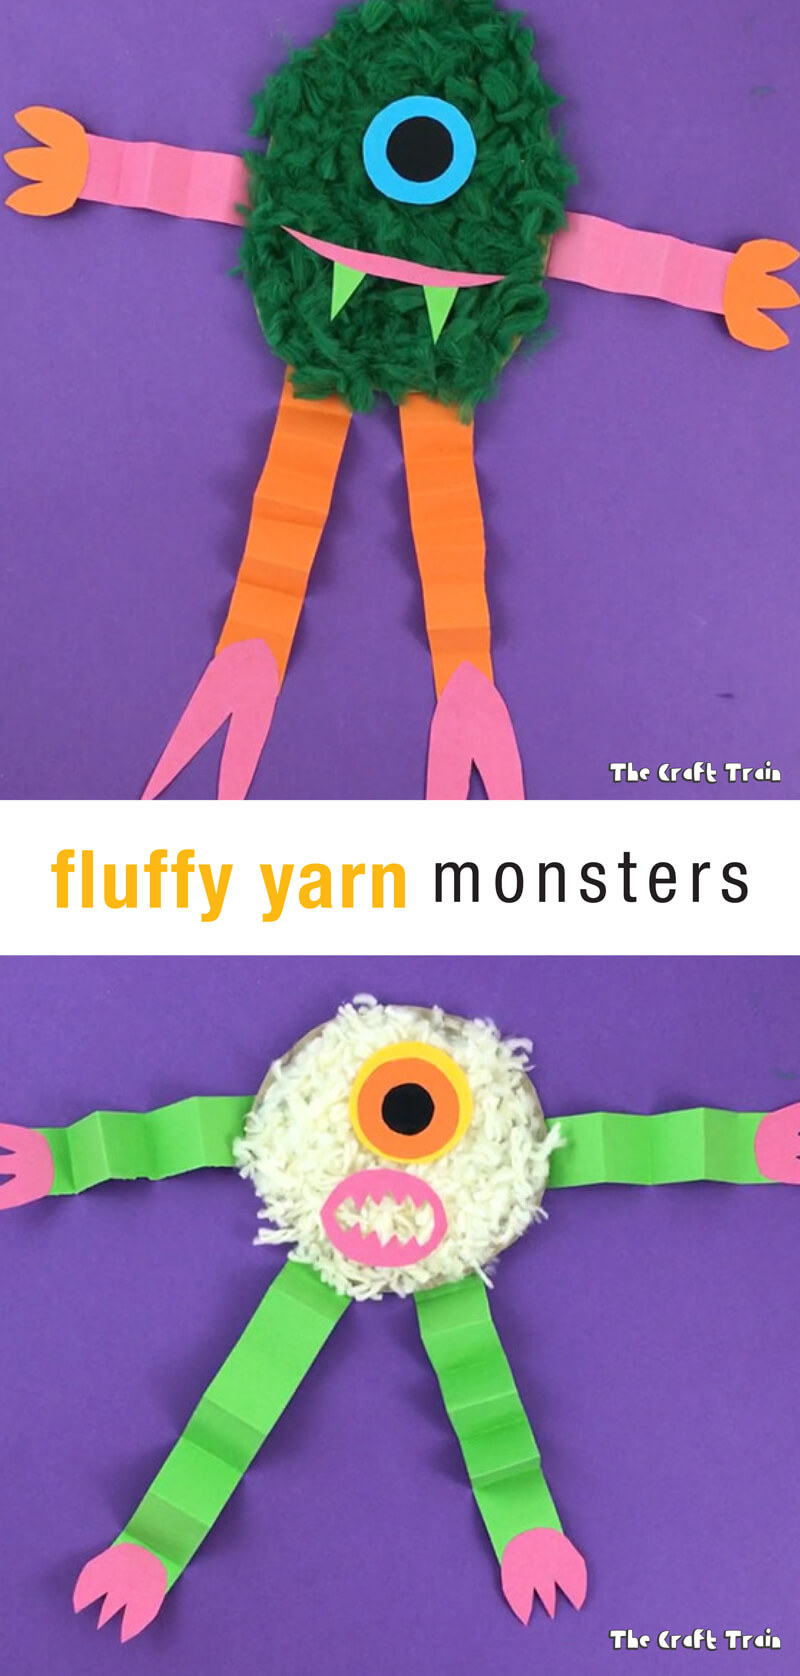 Make some fun, fluffy yarn monsters for Halloween. This is a great way to use up your pom pom trimmings!